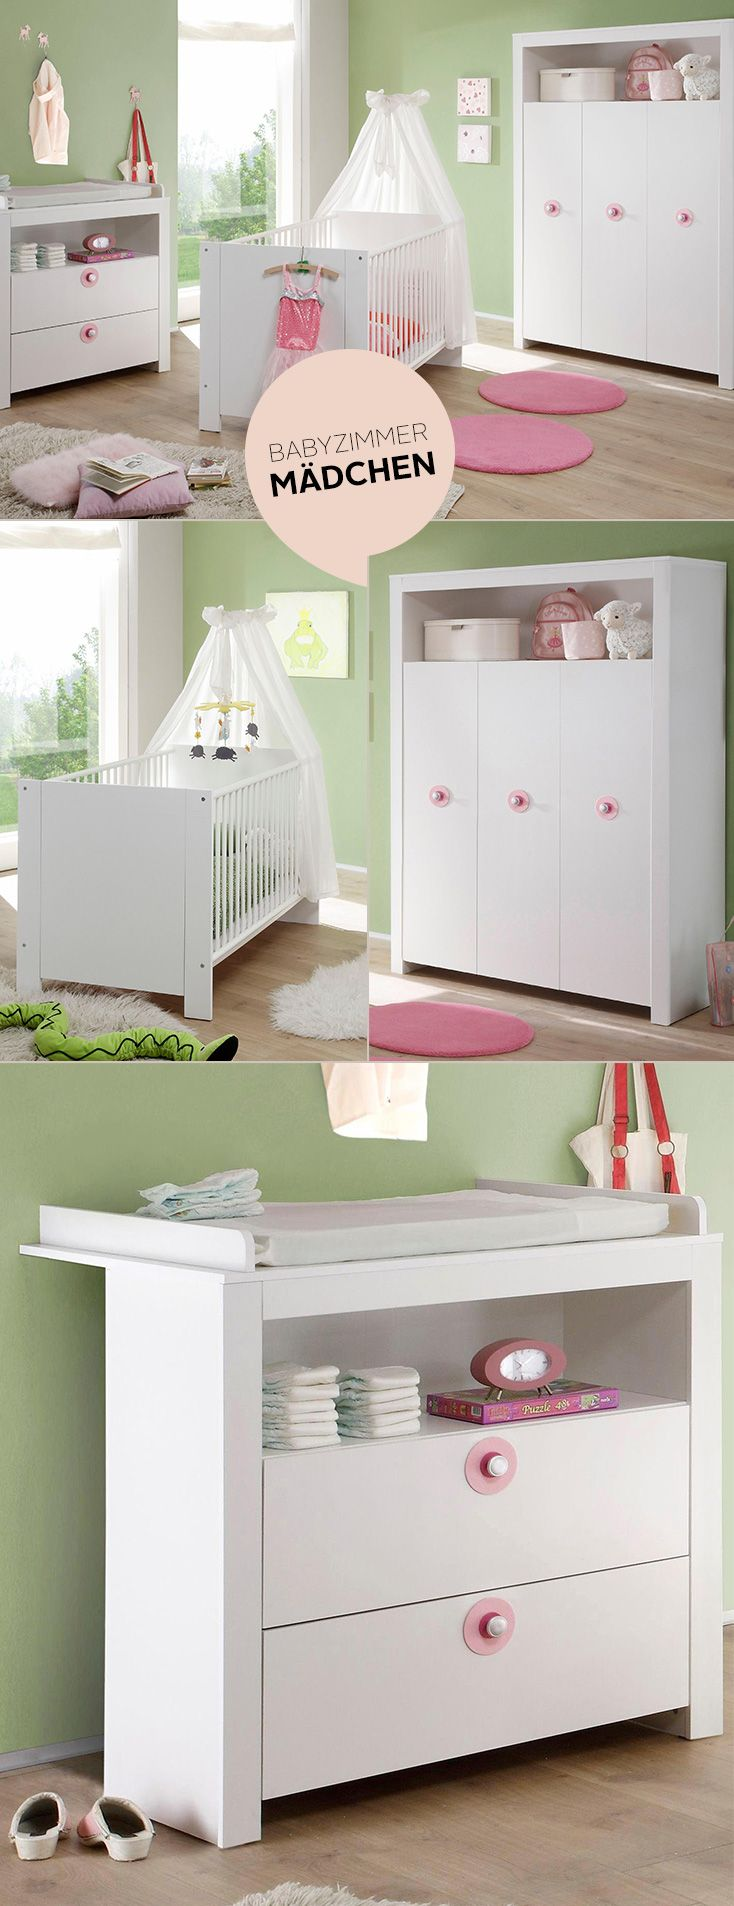 25 best ideas about babybett mit wickelkommode on pinterest babym bel wickelkommode wei and. Black Bedroom Furniture Sets. Home Design Ideas